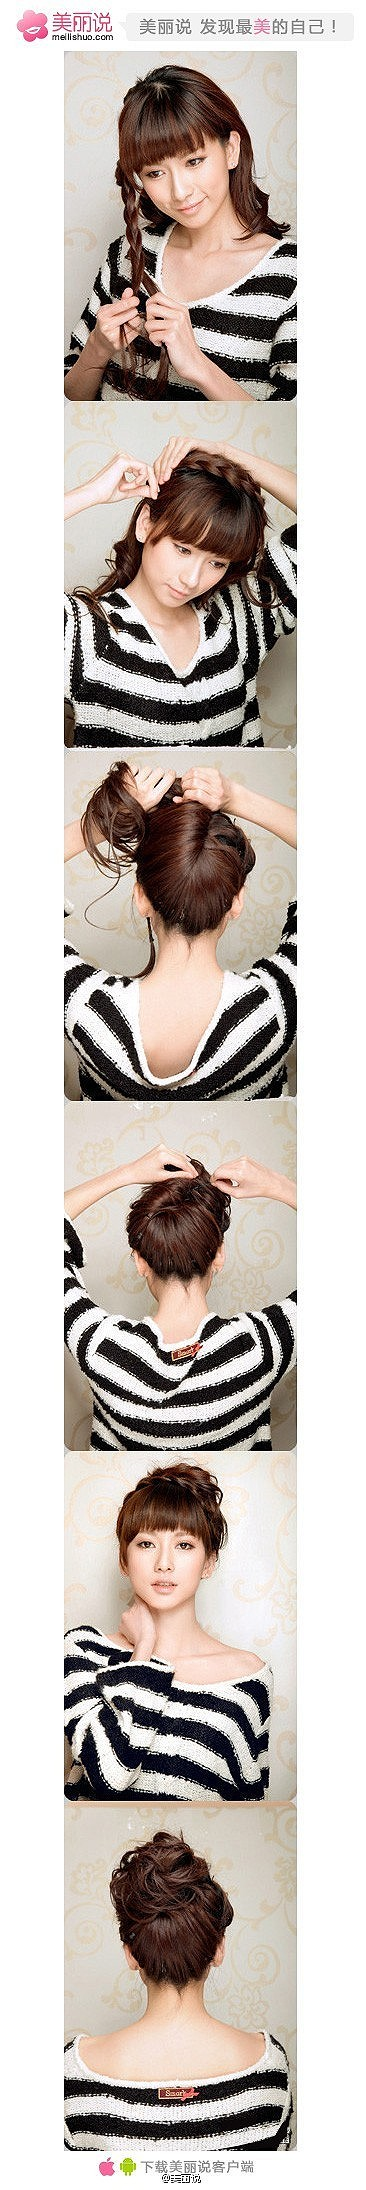 Classy braid with messy bun another hair idea hair iull do